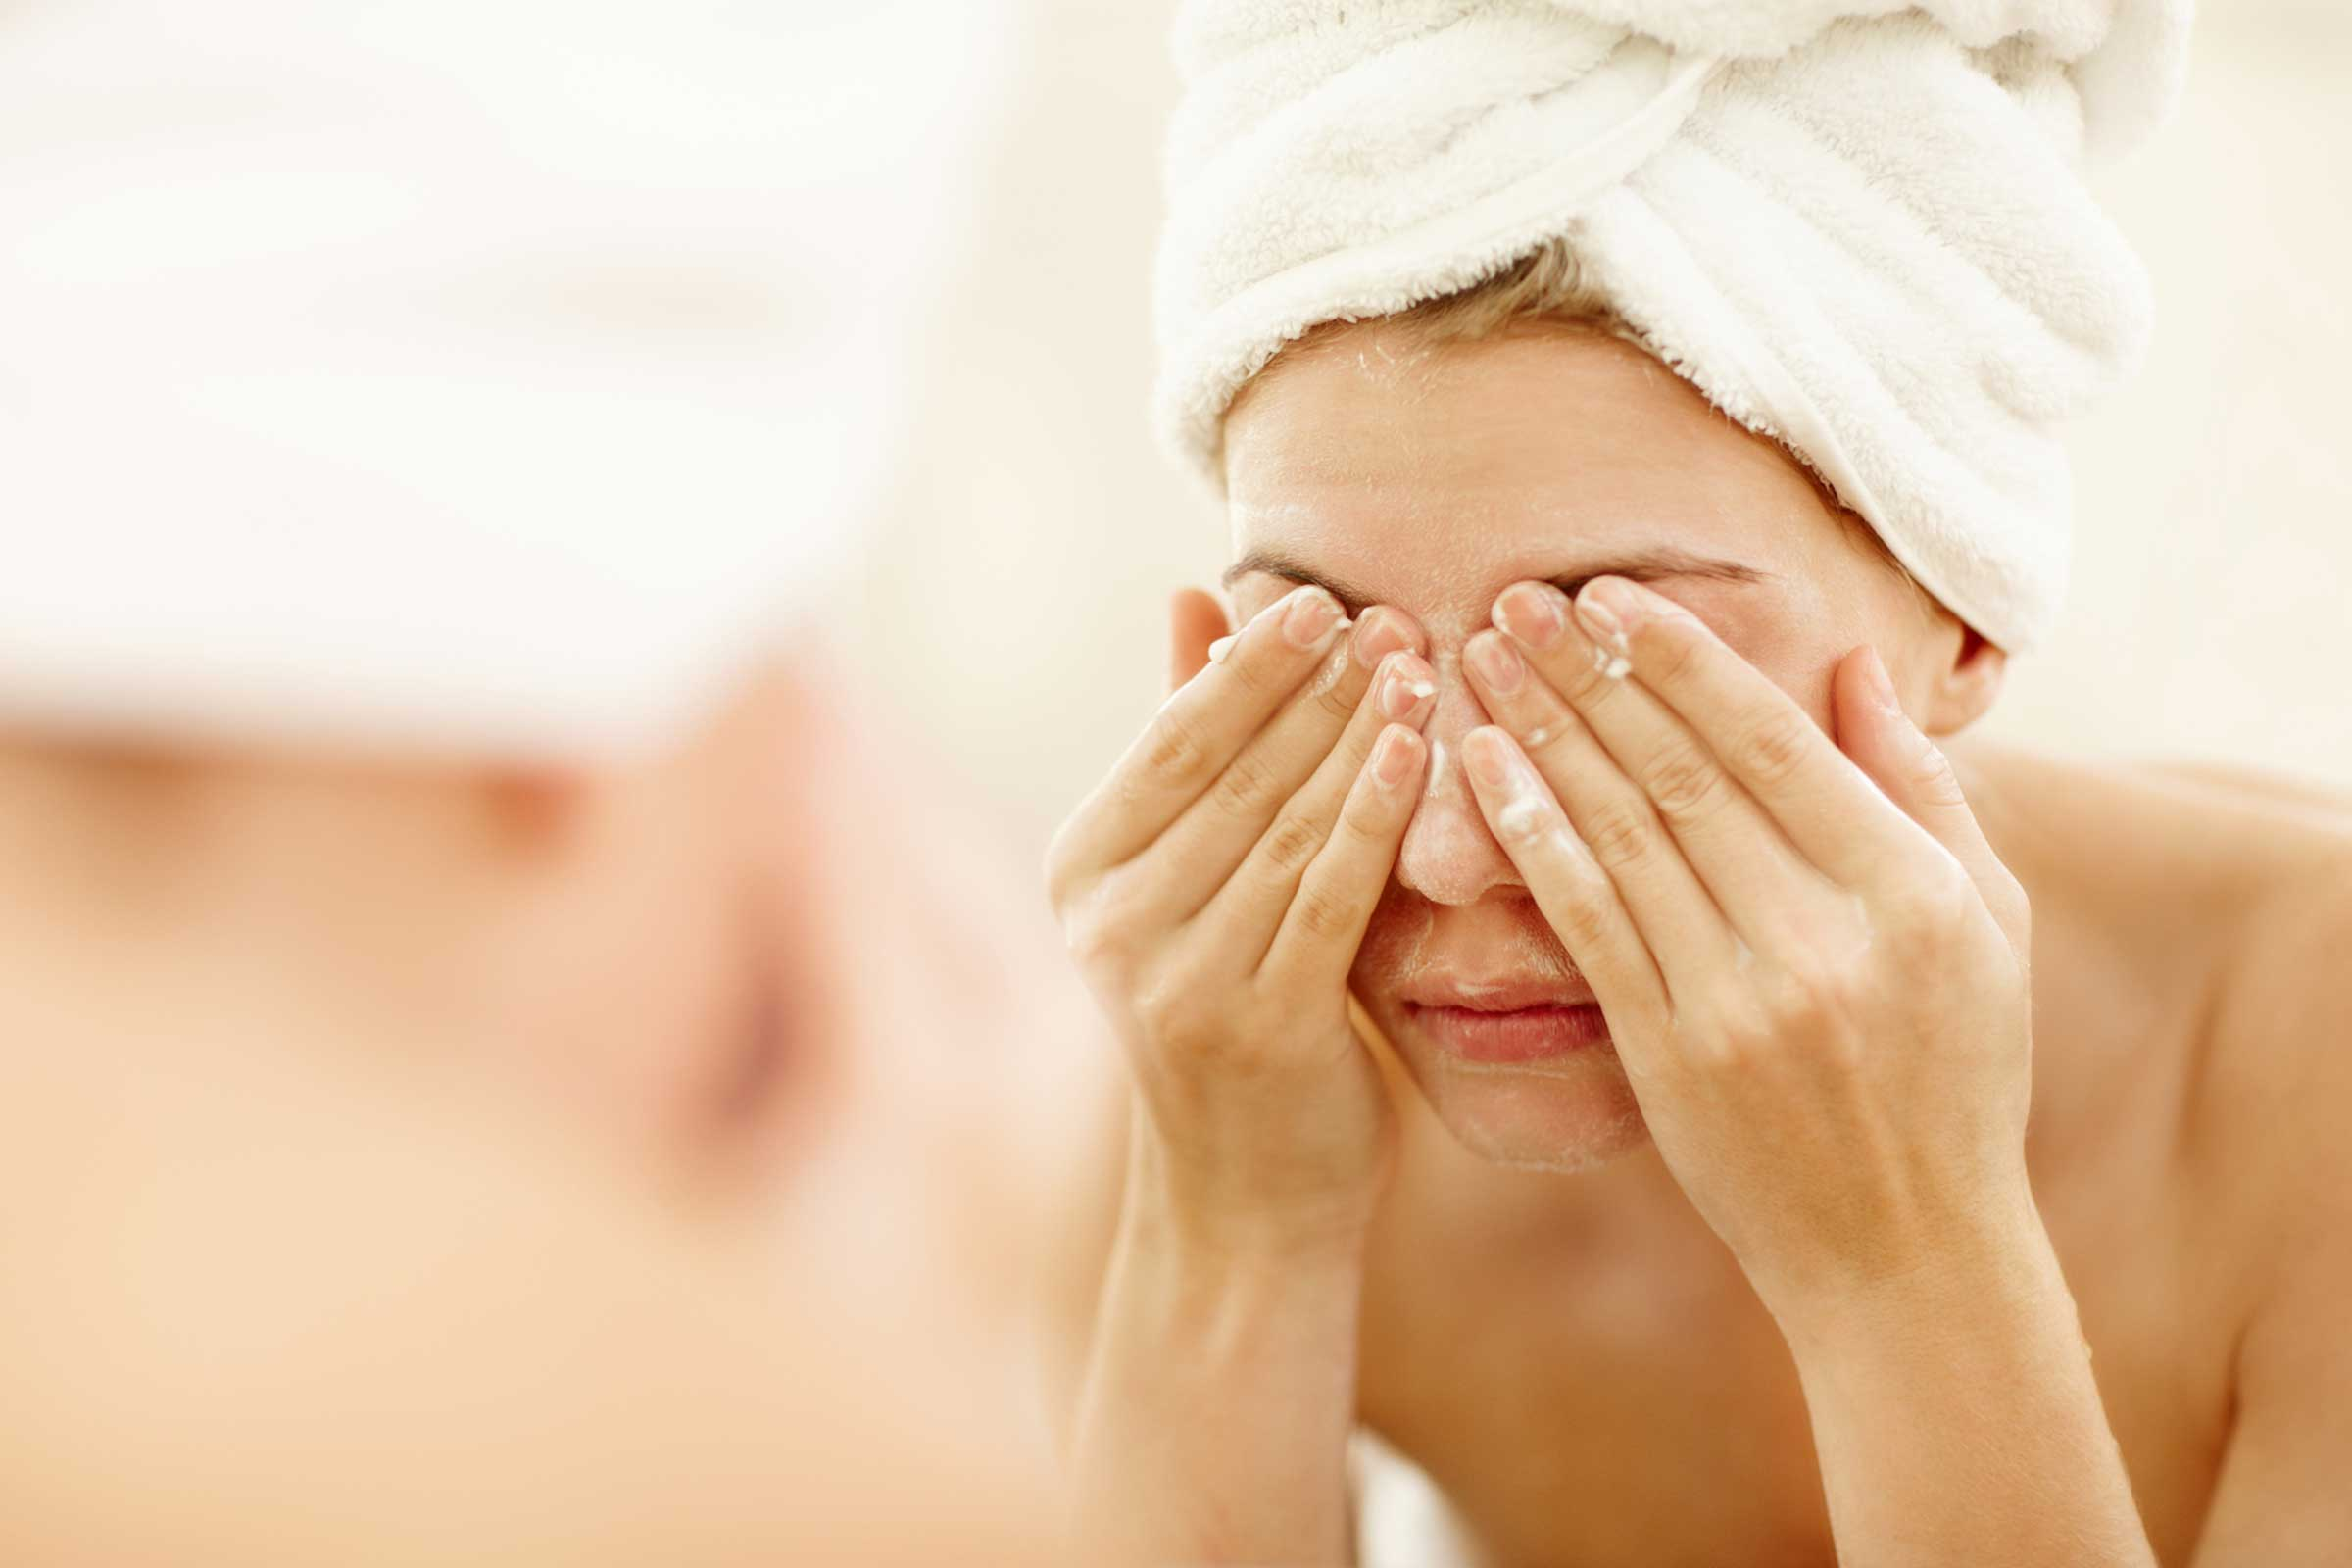 5 Natural Ingredients to Use in Your Beauty Routine